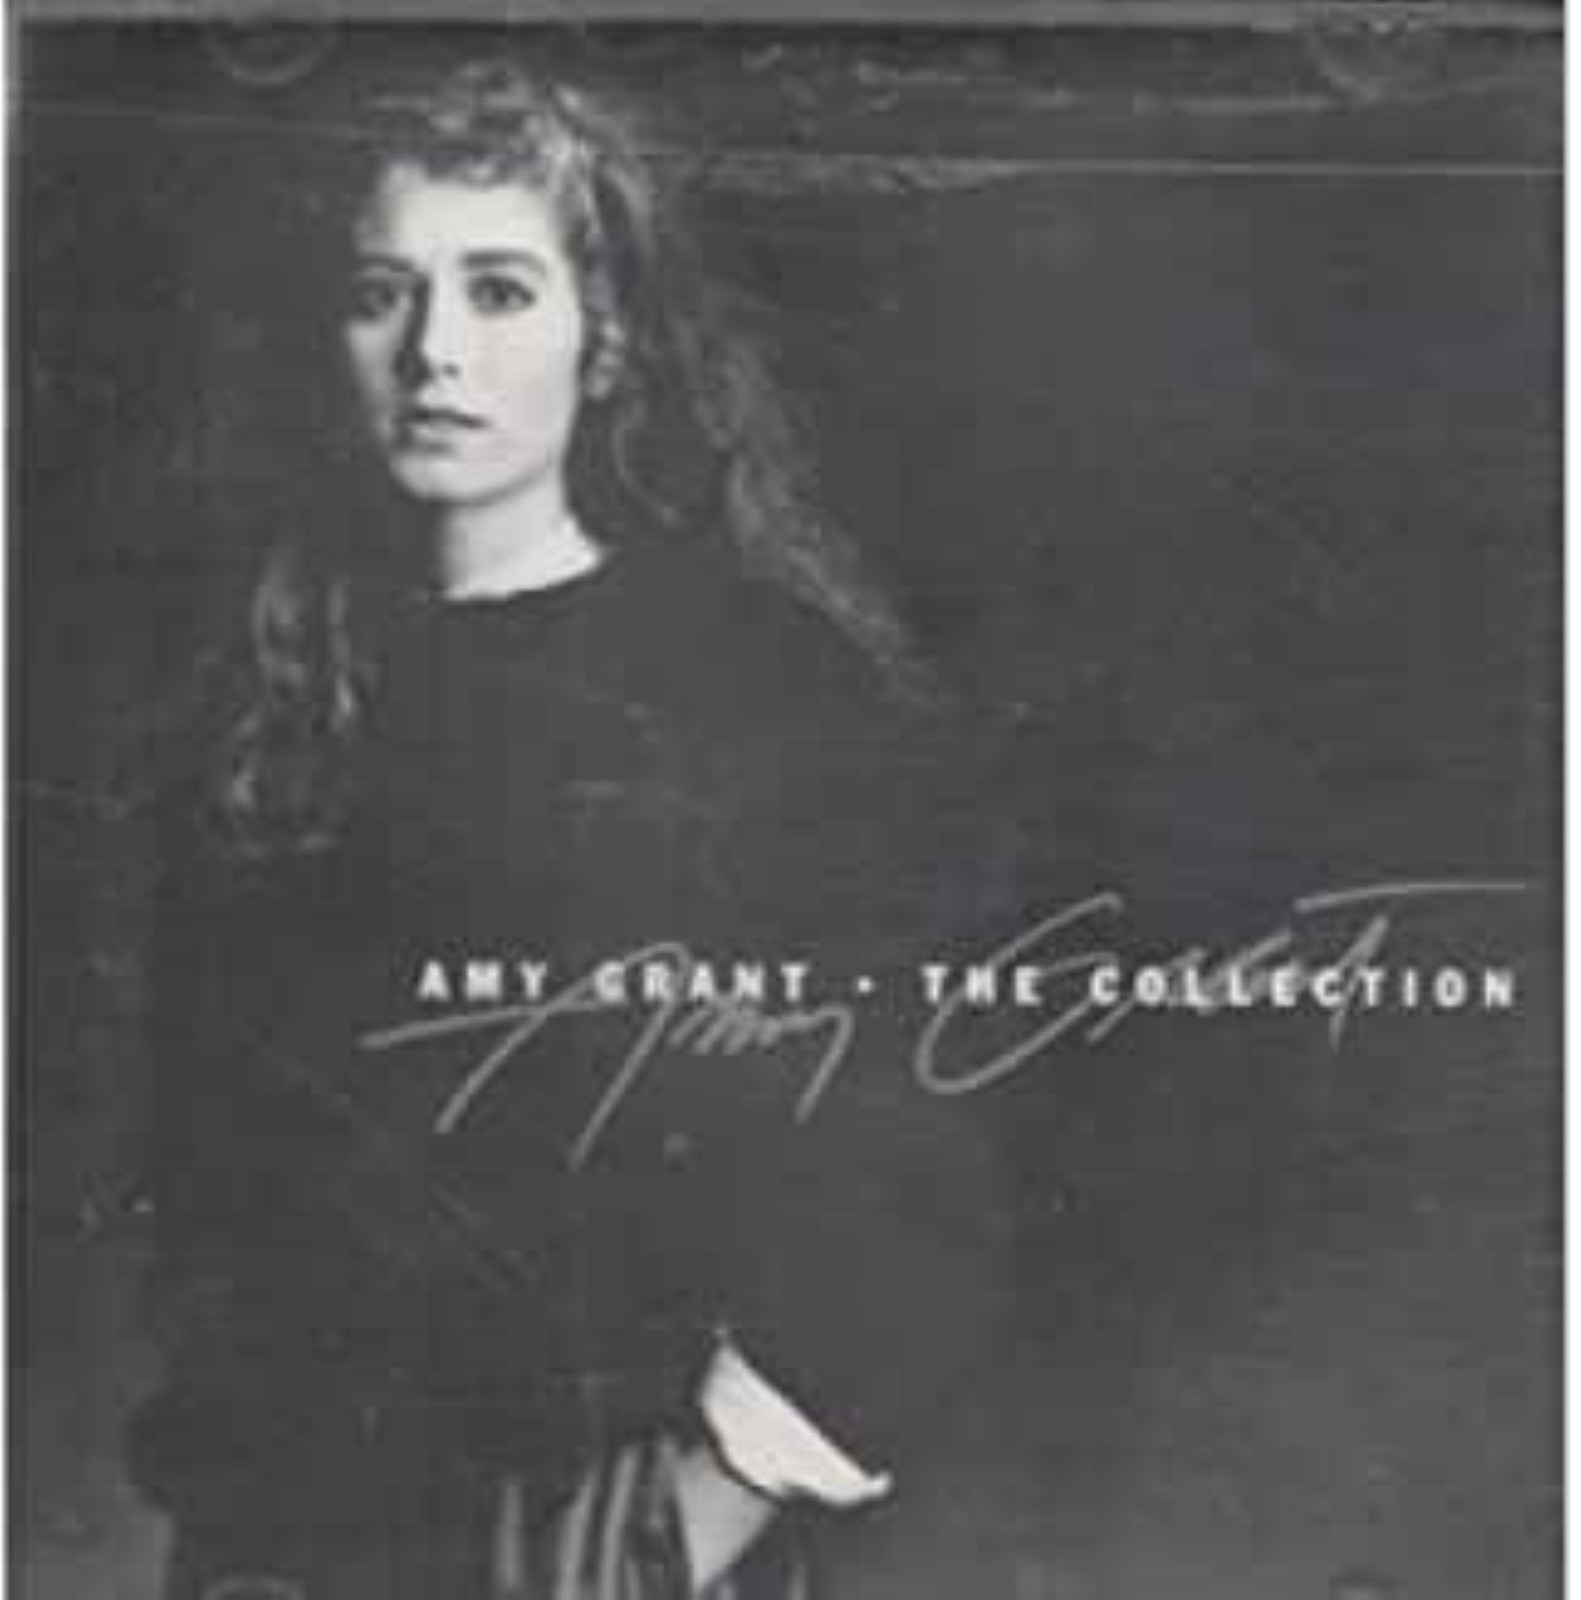 The Collection by Amy Grant Cd